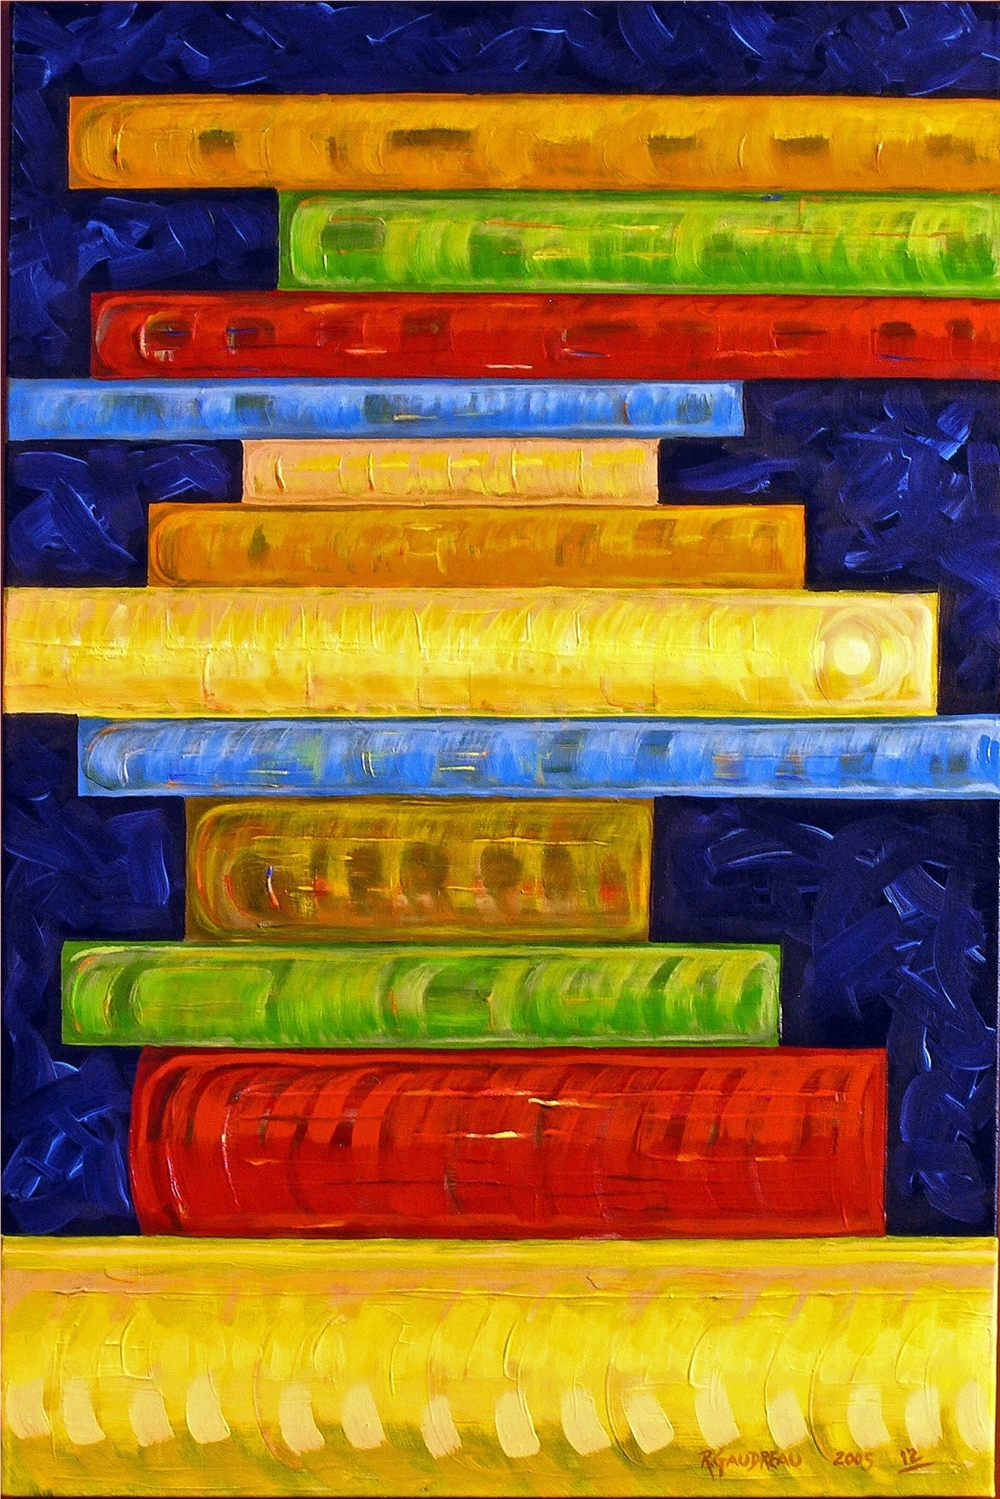 12  Books   2006 oil on canvas 36 x 24 inches